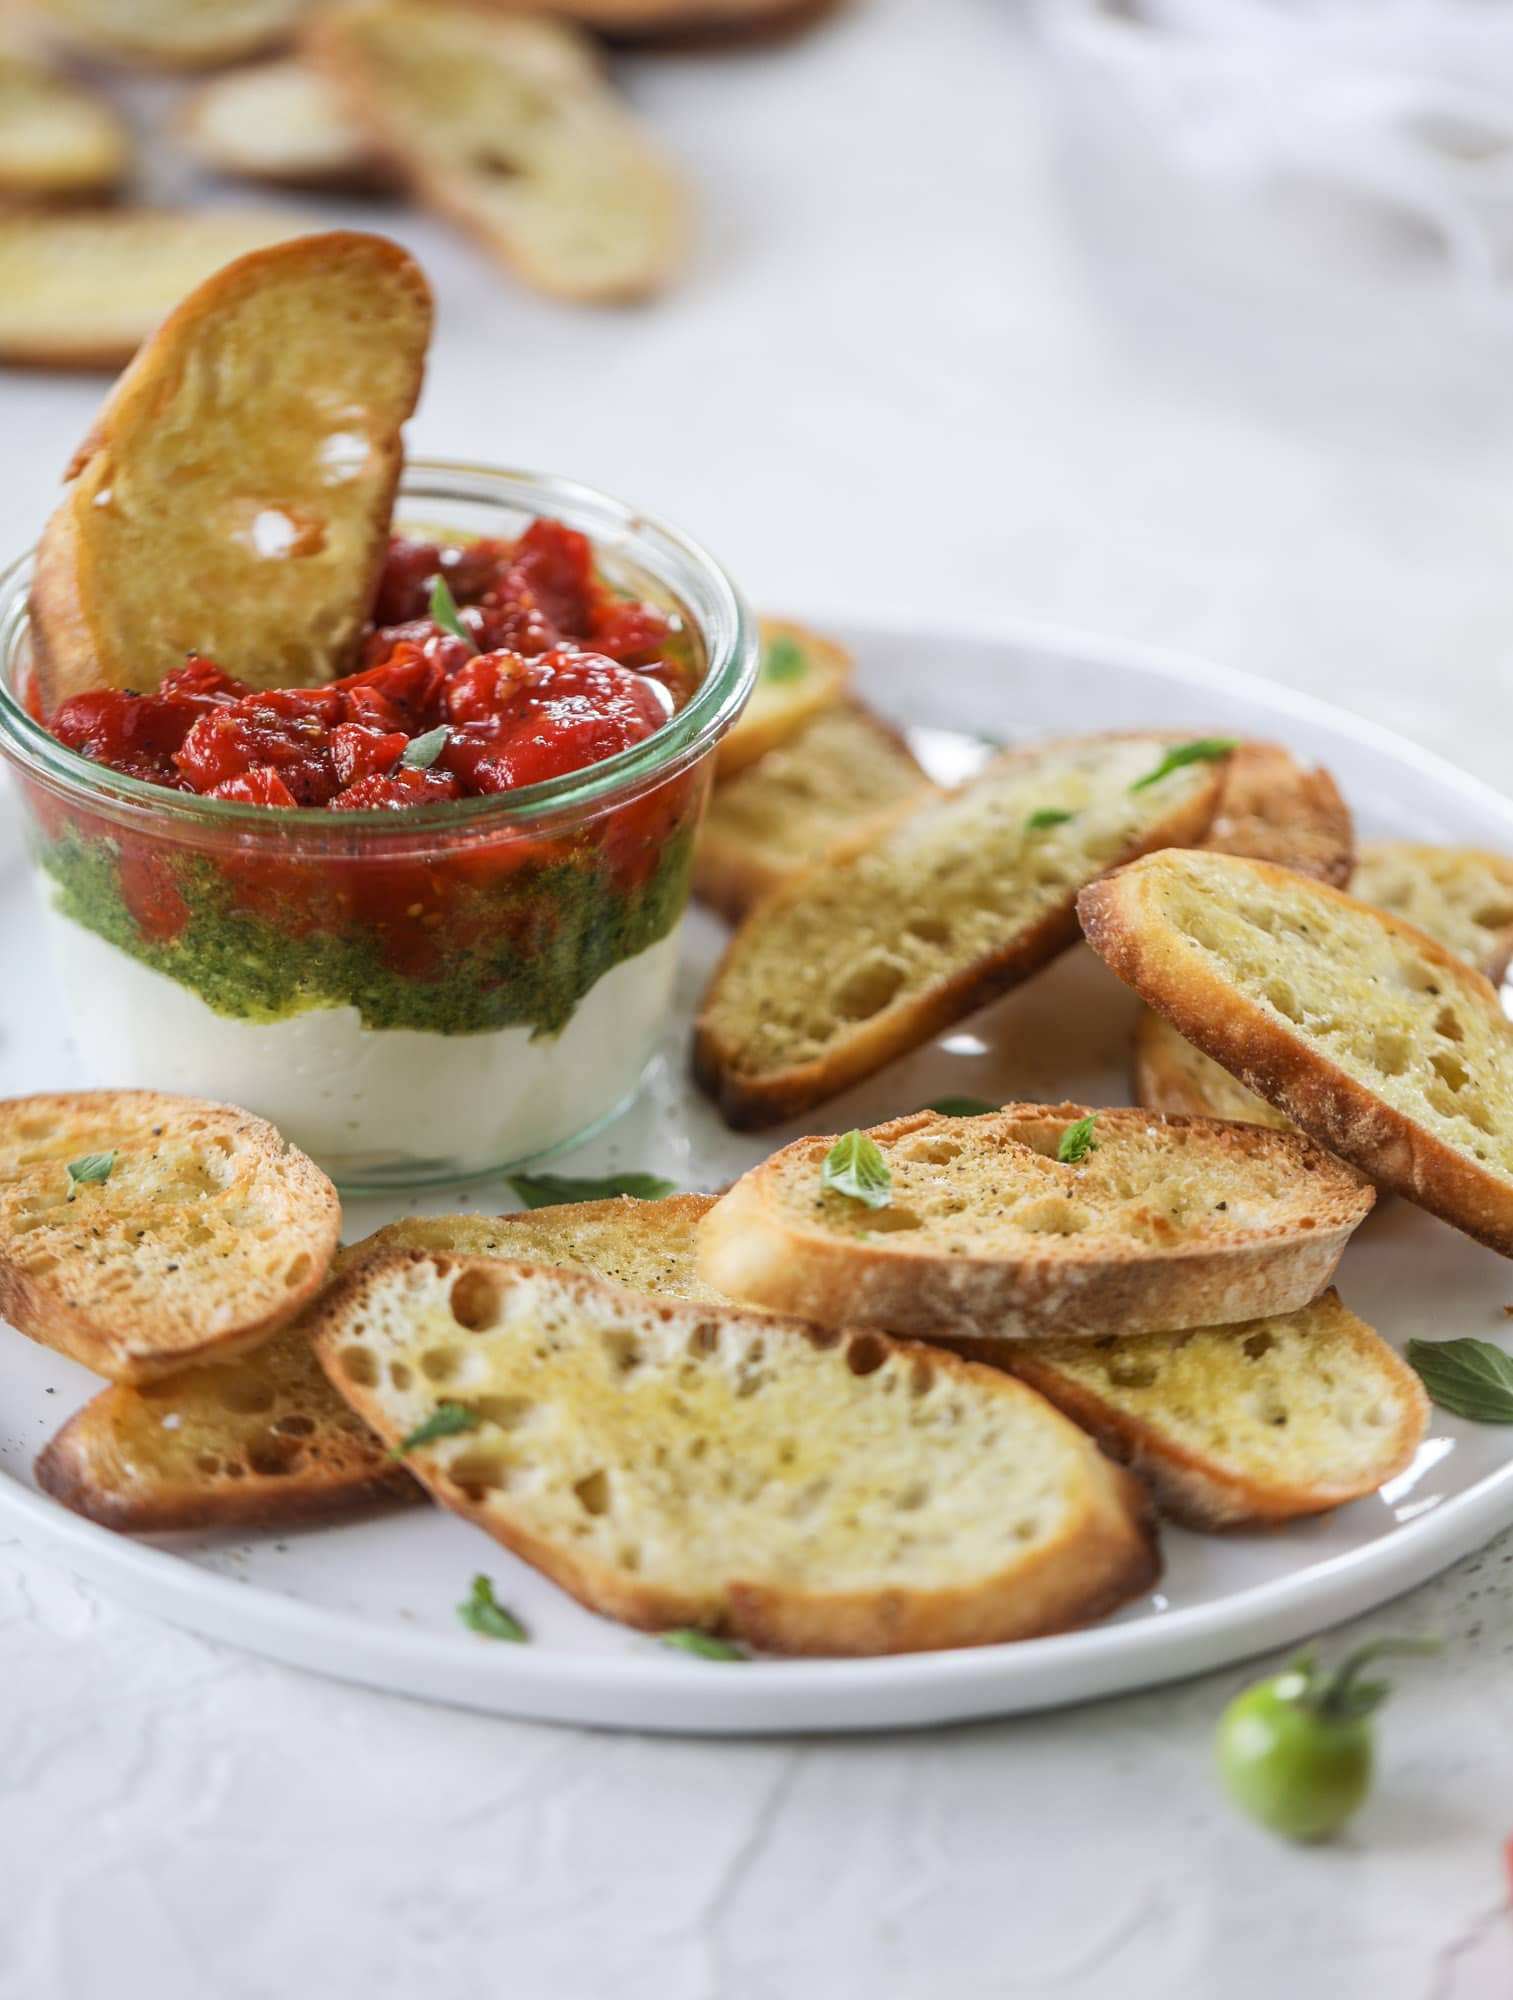 This ricotta jam jar is the perfect appetizer and snack to serve at a party! Based on the ricotta jam jar served at Nordstrom Cafe, it starts with creamy ricotta, is topped with flavorful basil pesto and a quick tomato jam. Serve with crunchy bread and dip dip dip! I howsweeteats.com #ricotta #jam #jar #nordstrom #tomato #pesto #appetizer #dip